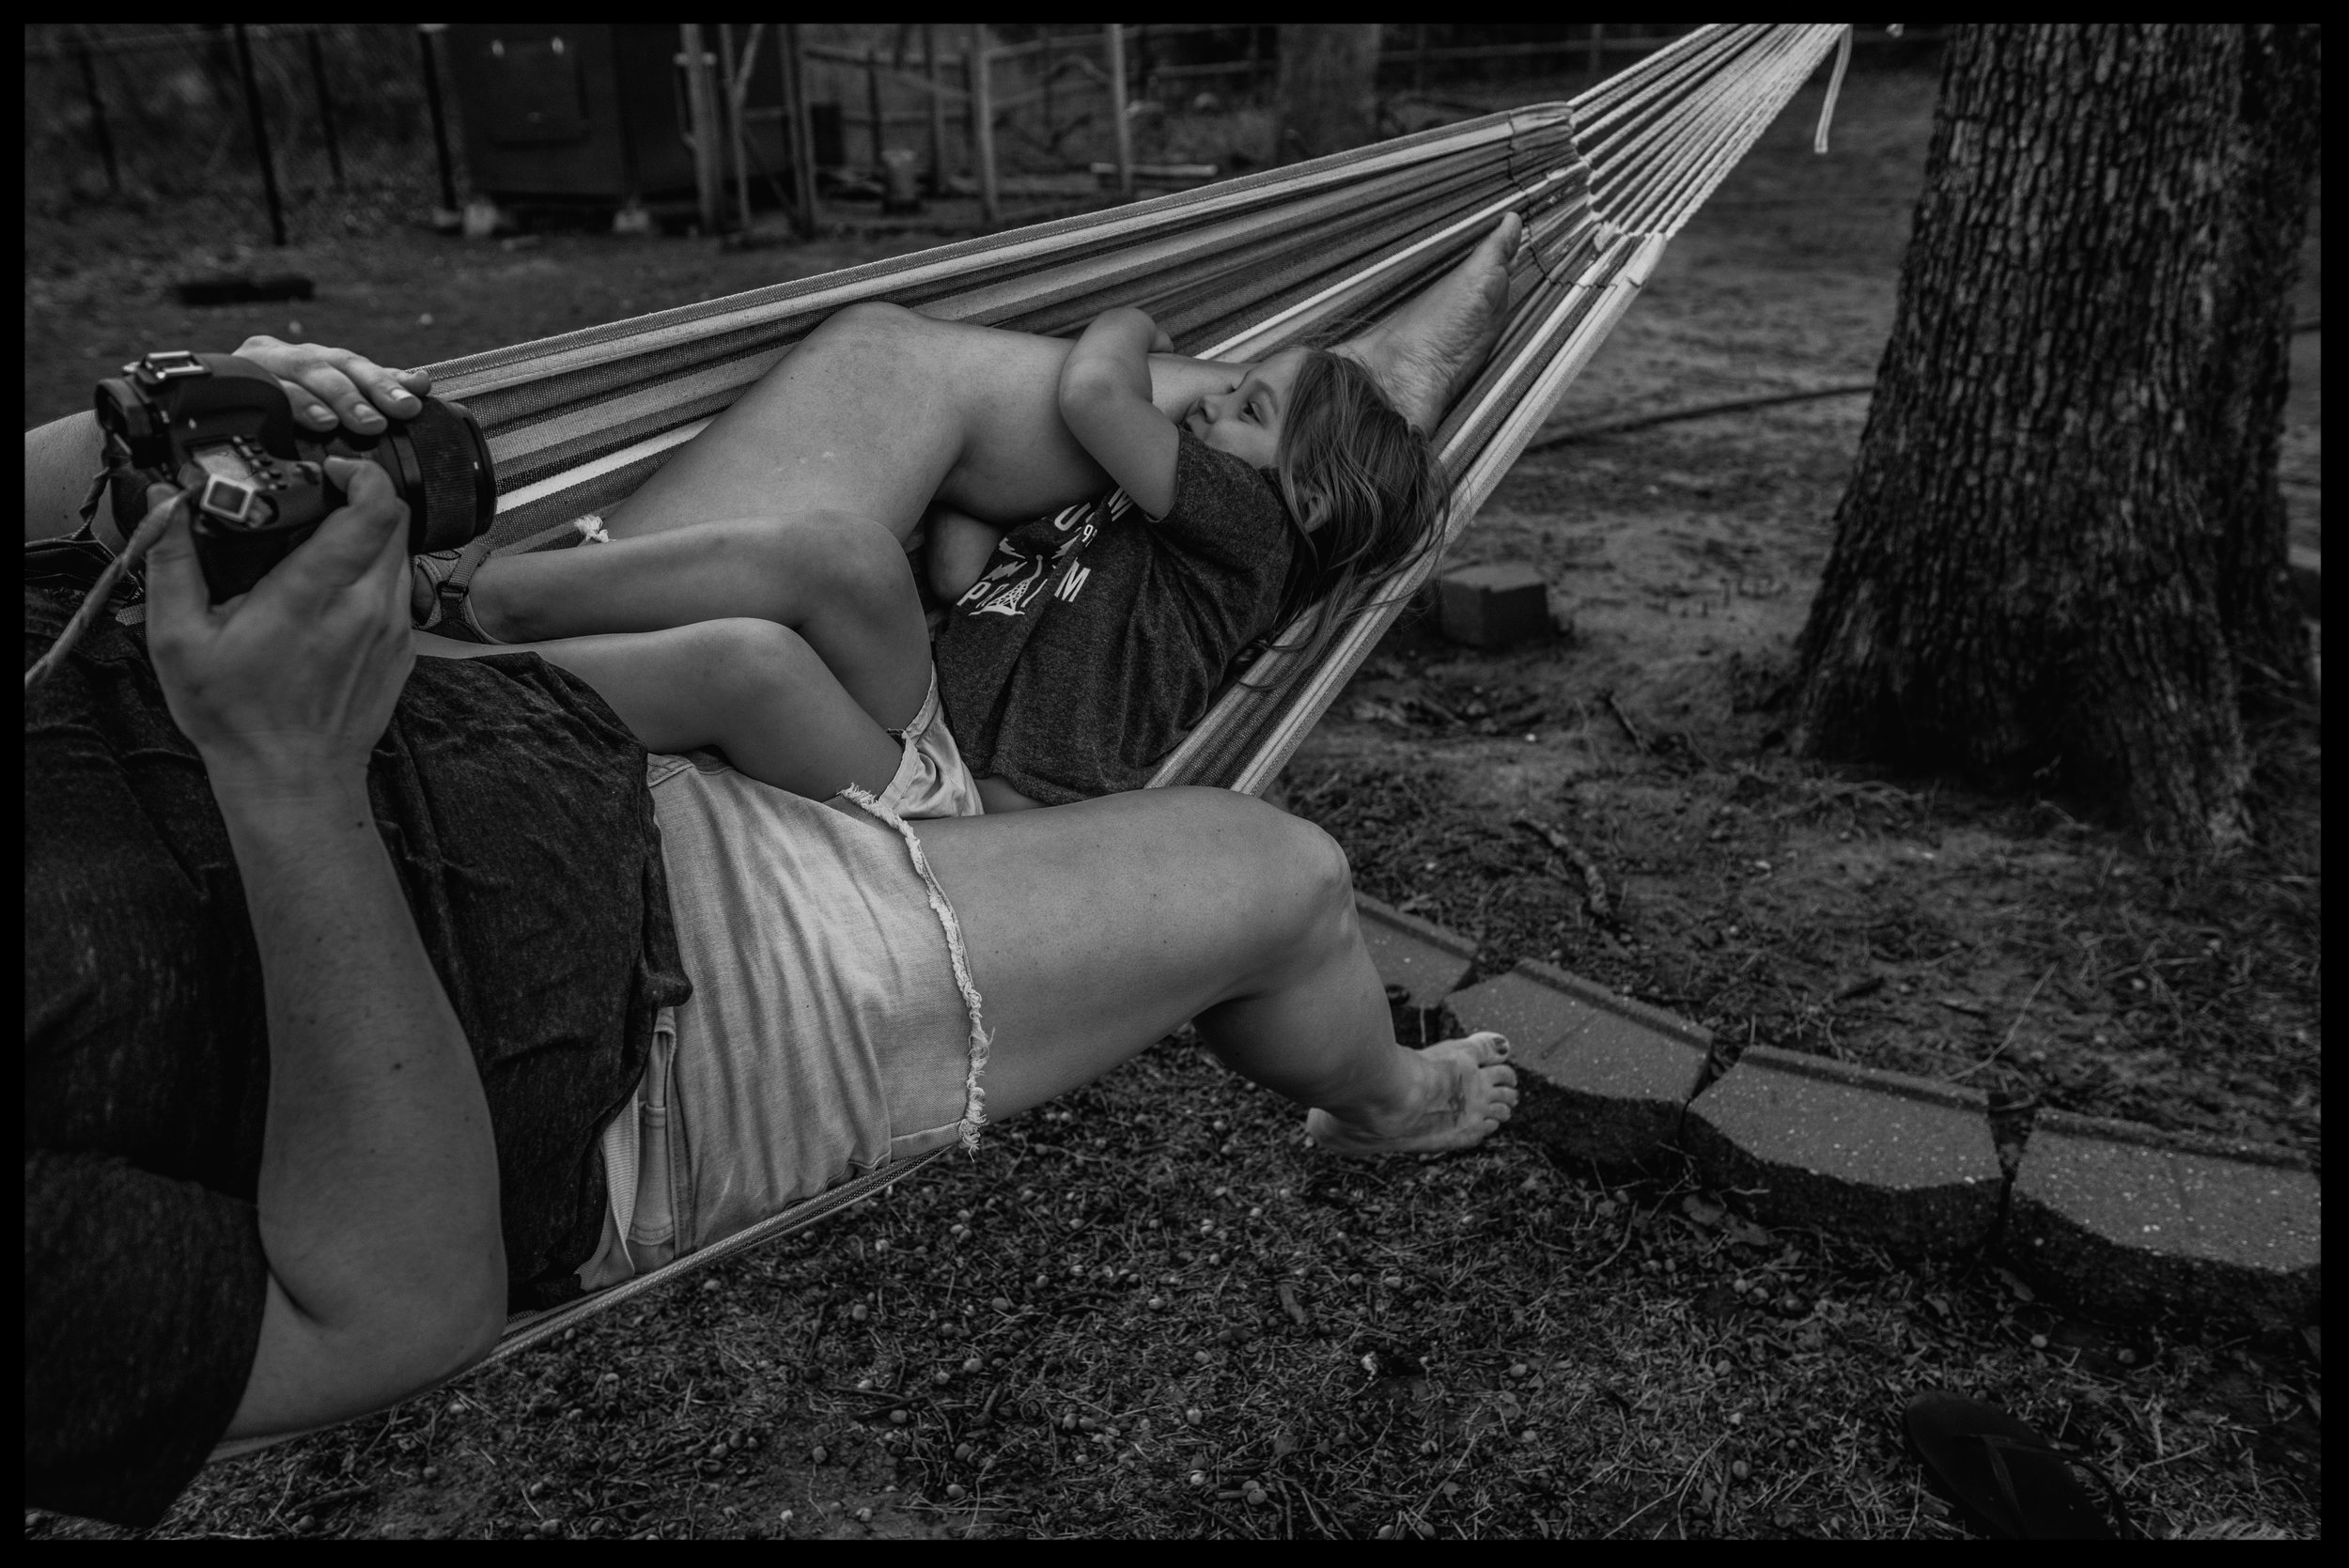 Mom taking a photo of her daughter who is holding onto her leg in the hammock, black and white